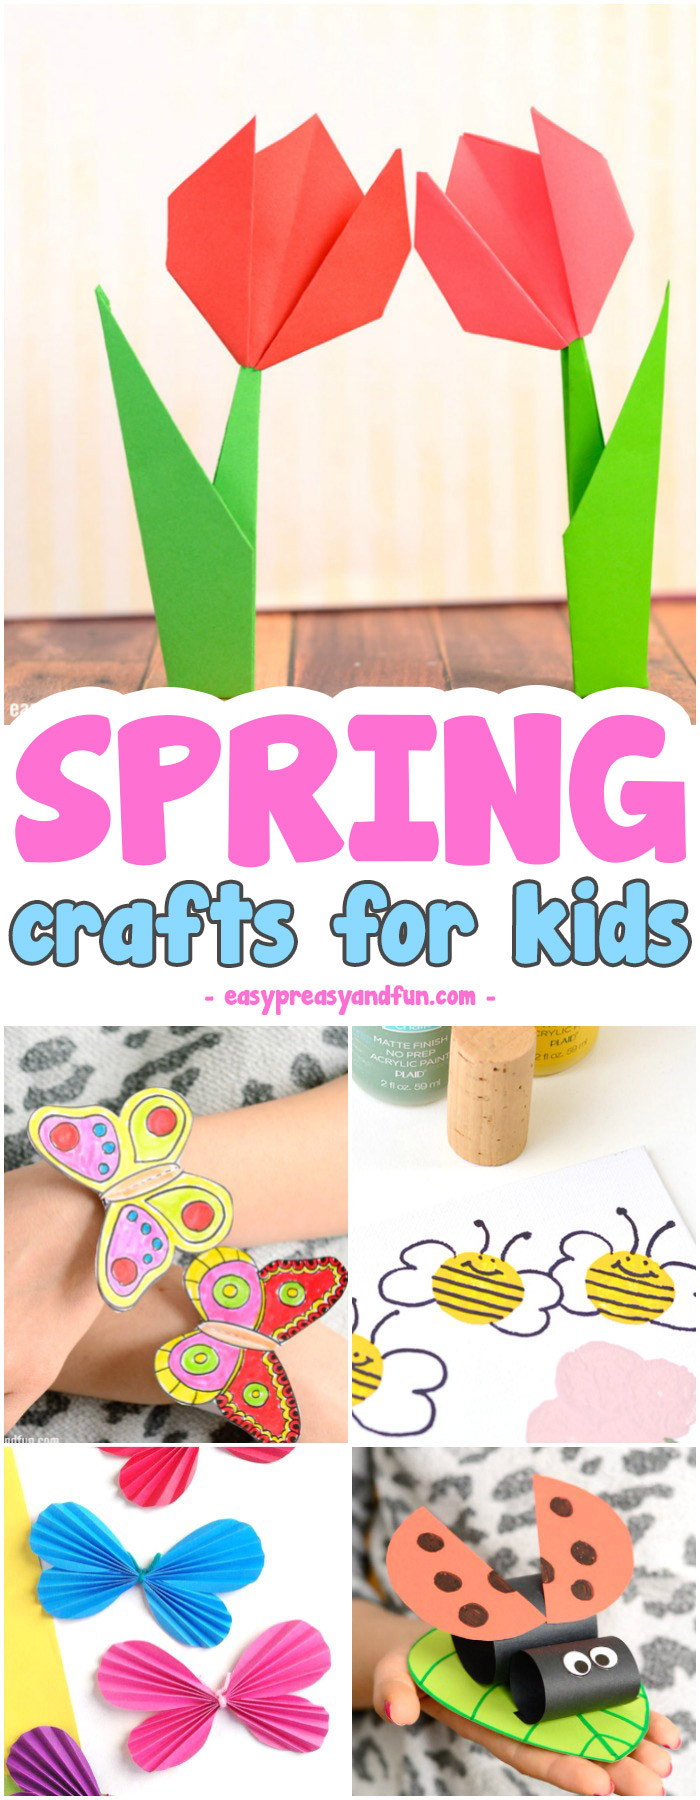 Best ideas about Kids Project Ideas . Save or Pin Spring Crafts for Kids Art and Craft Project Ideas for Now.